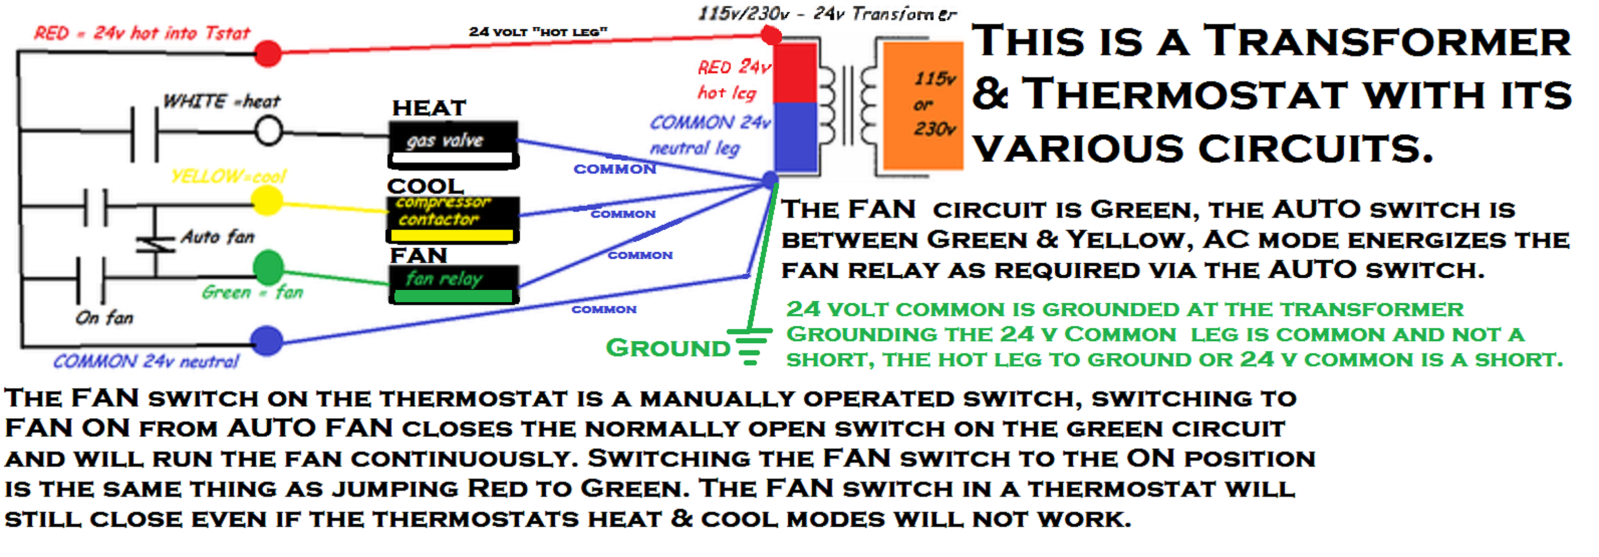 hight resolution of hvac transformer wiring diagram wiring diagram third level hvac condenser fans furnace how do i identify